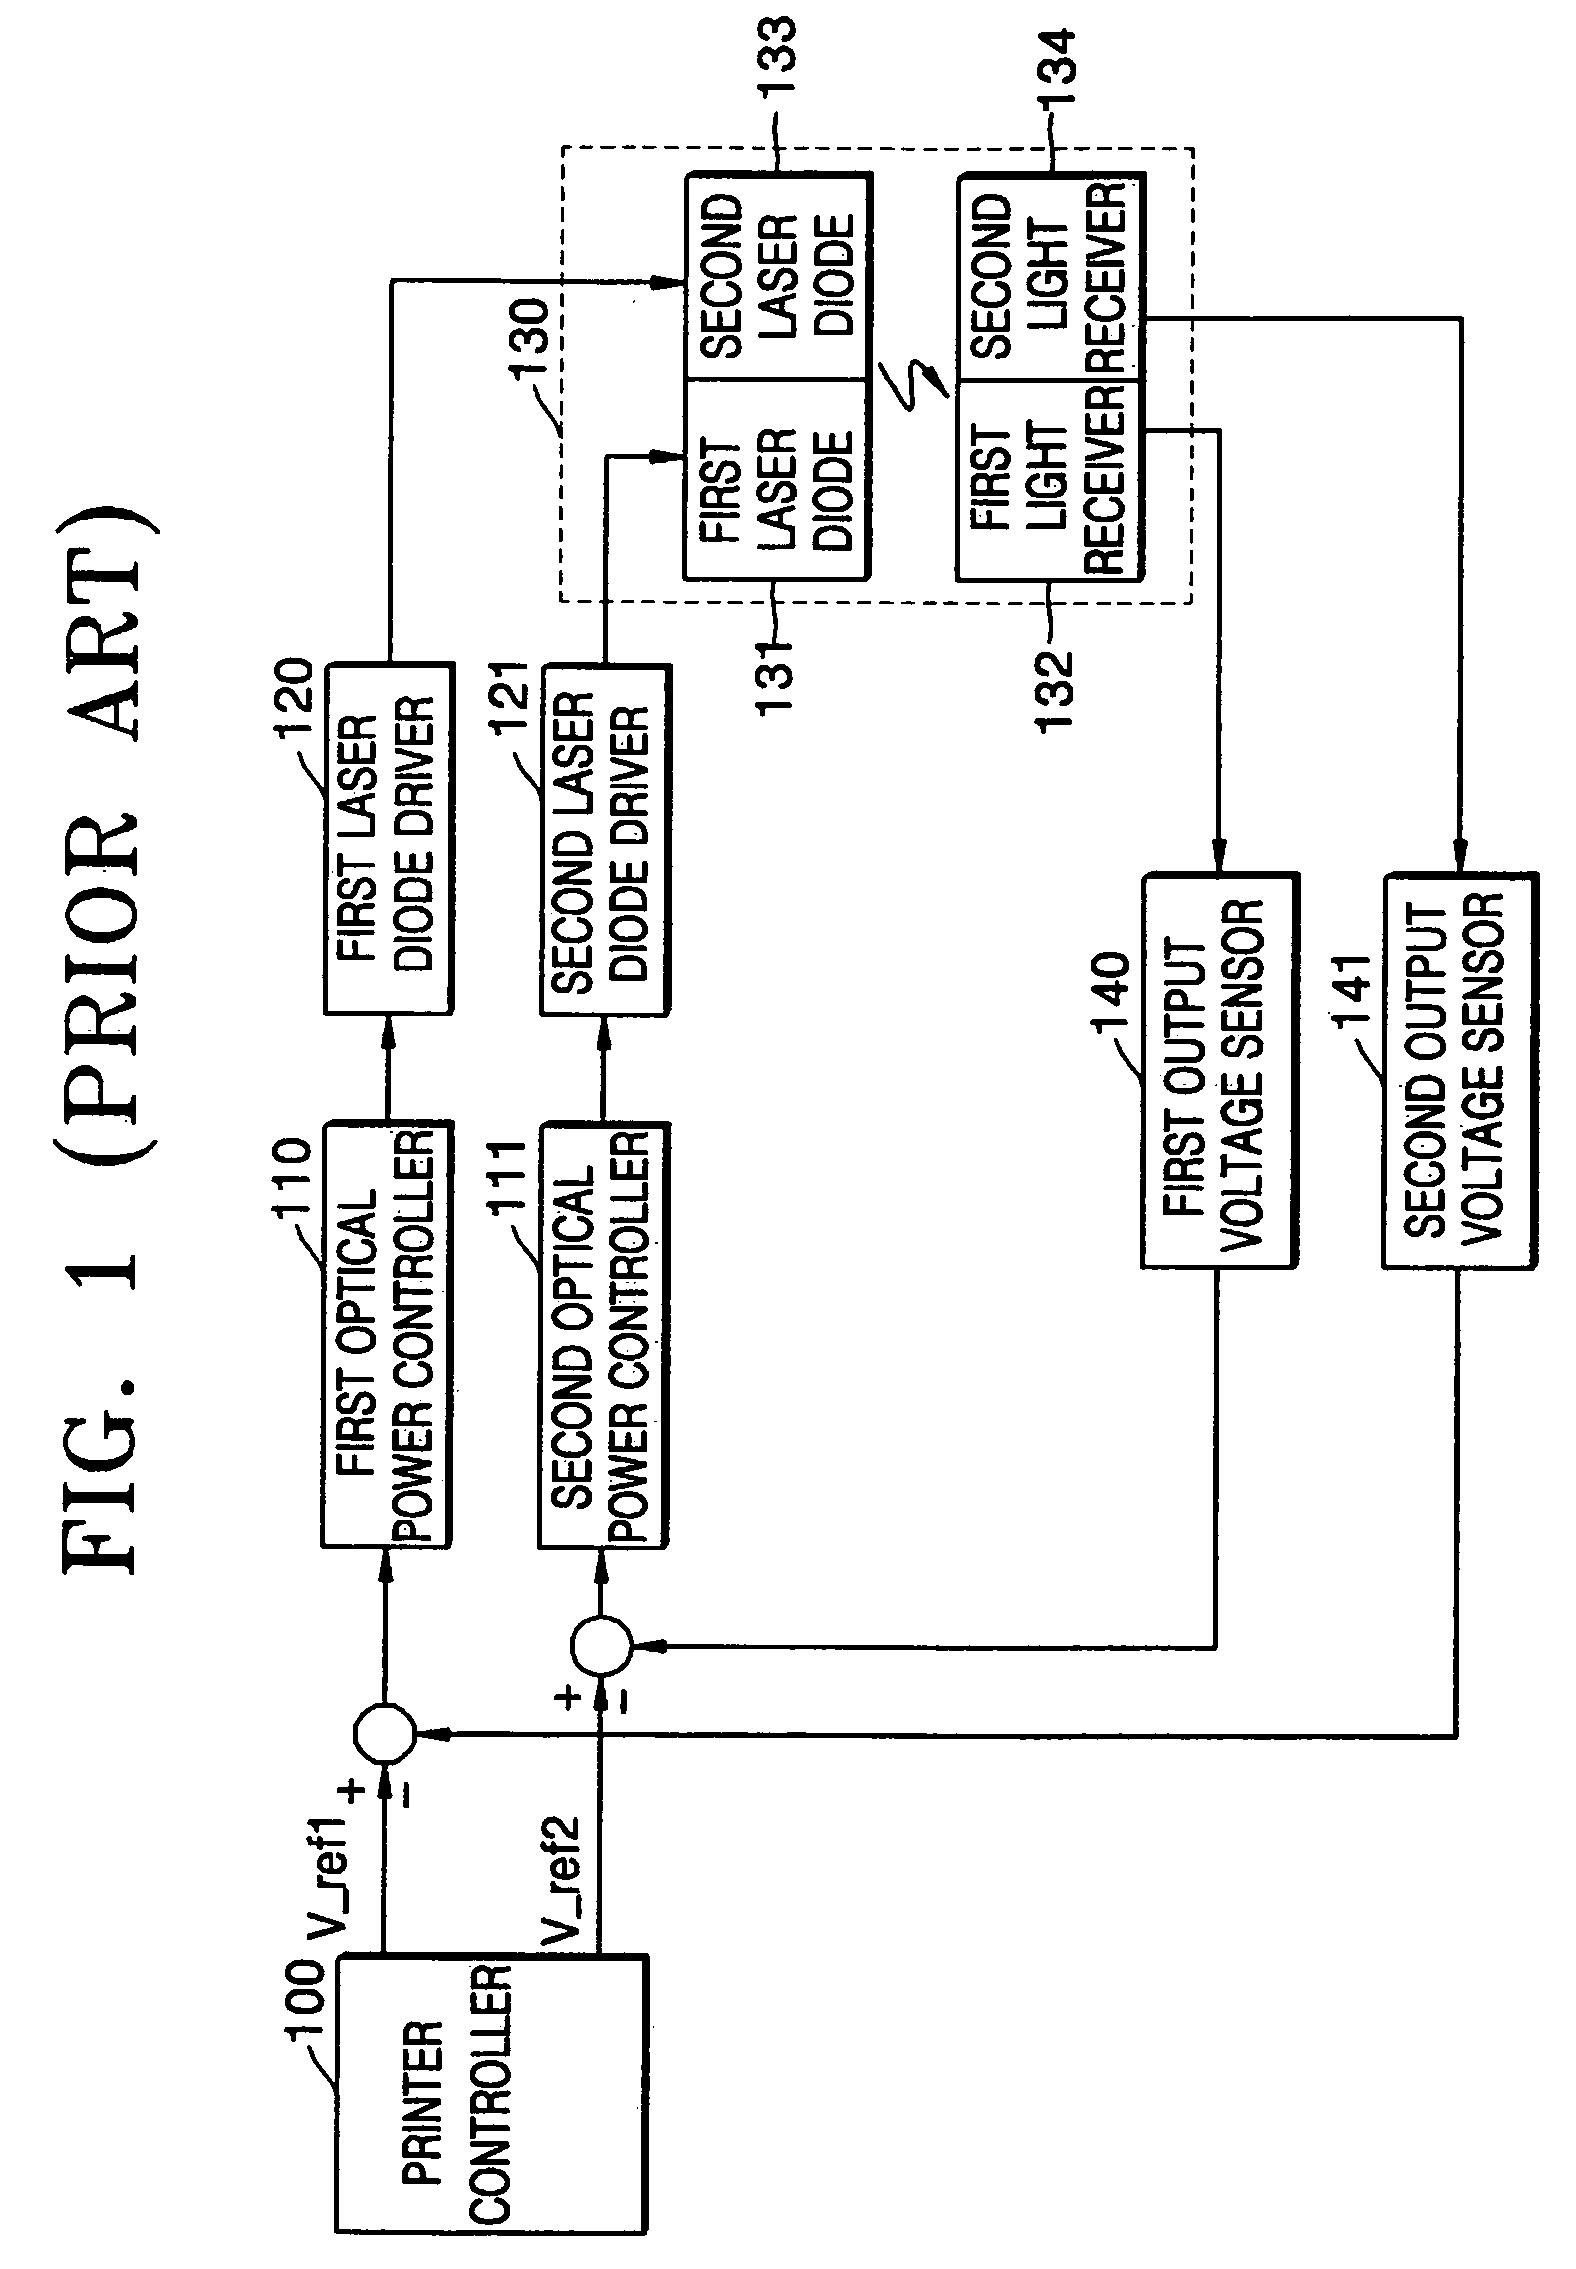 Patent Us7406110 Method And Apparatus For Controlling Power Of Laser Diode Driver Circuit Diagram Drawing